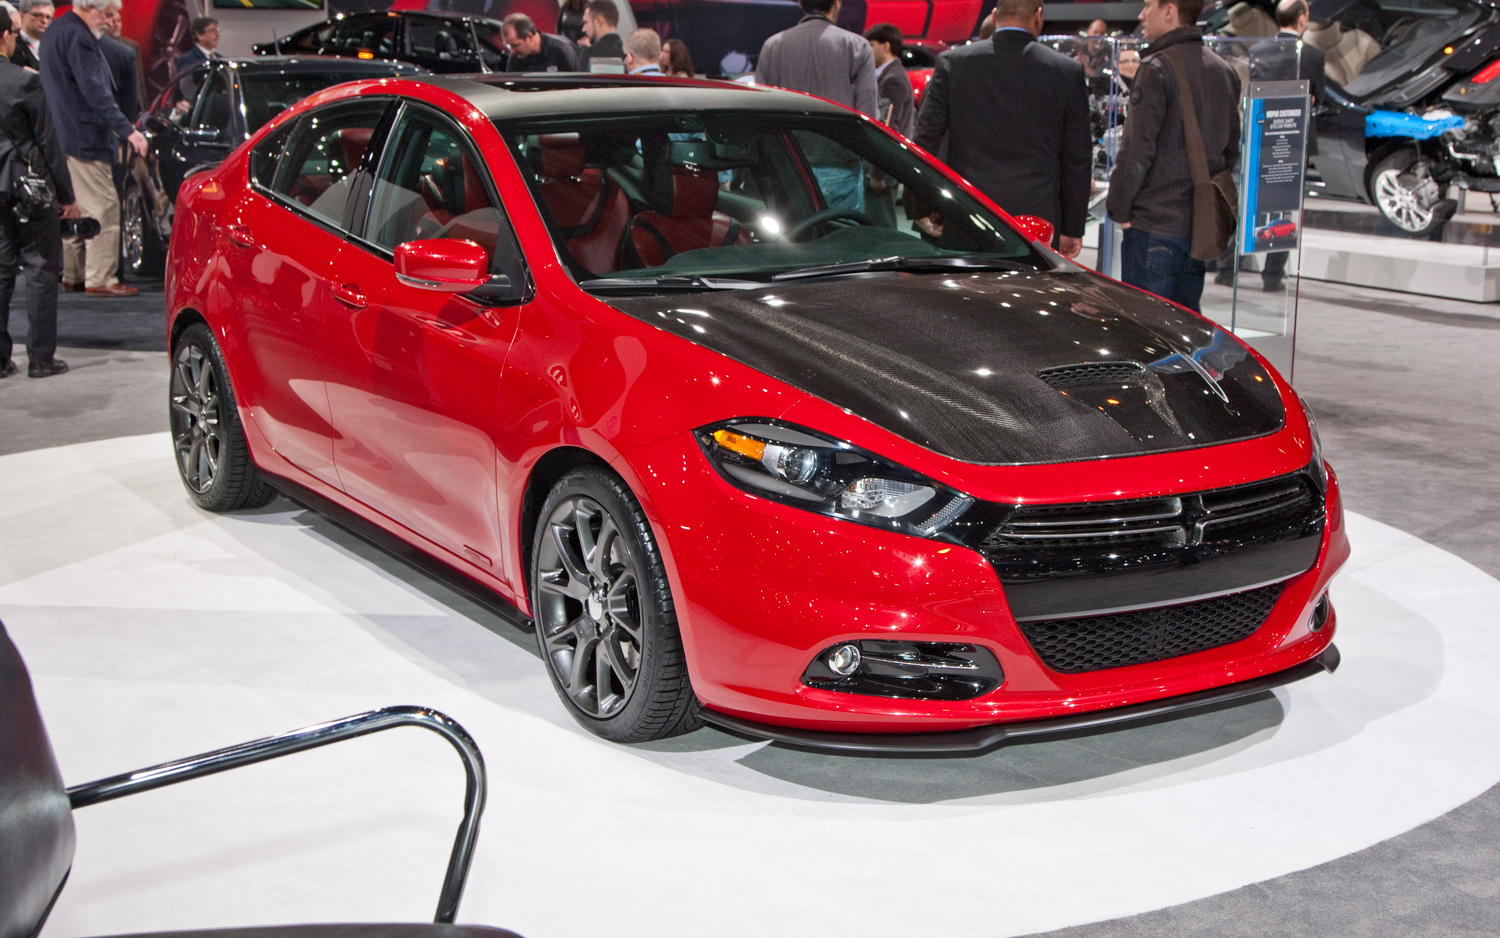 Dodge Dart photo 10